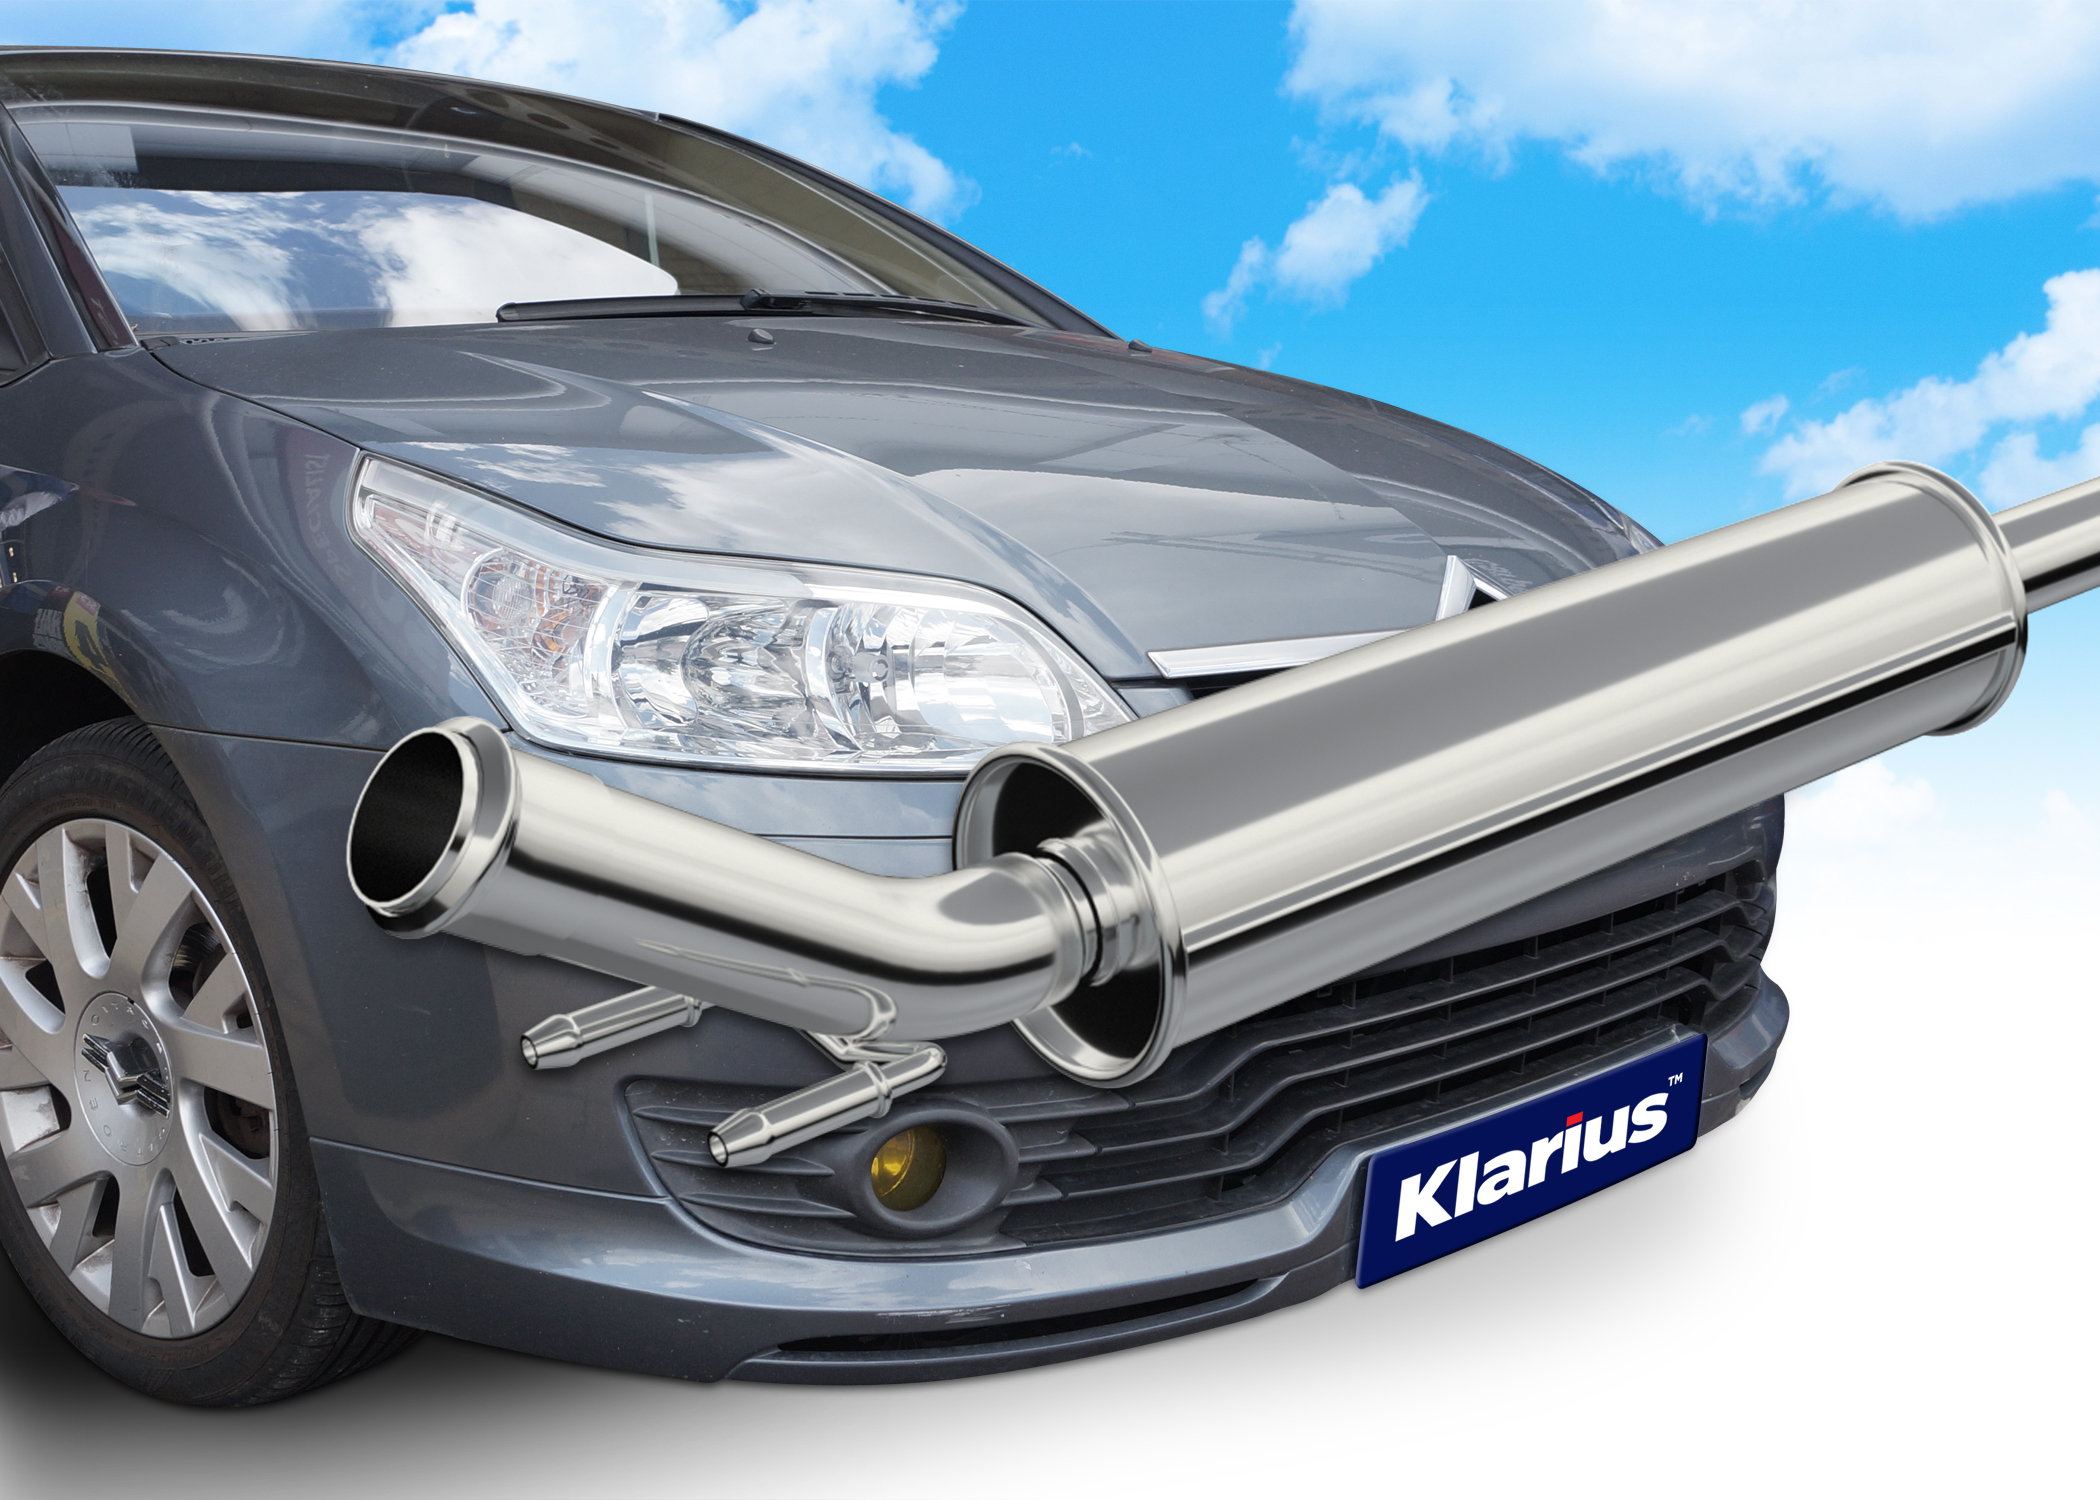 Over 100 new Klarius components boost aftermarket emissions choice